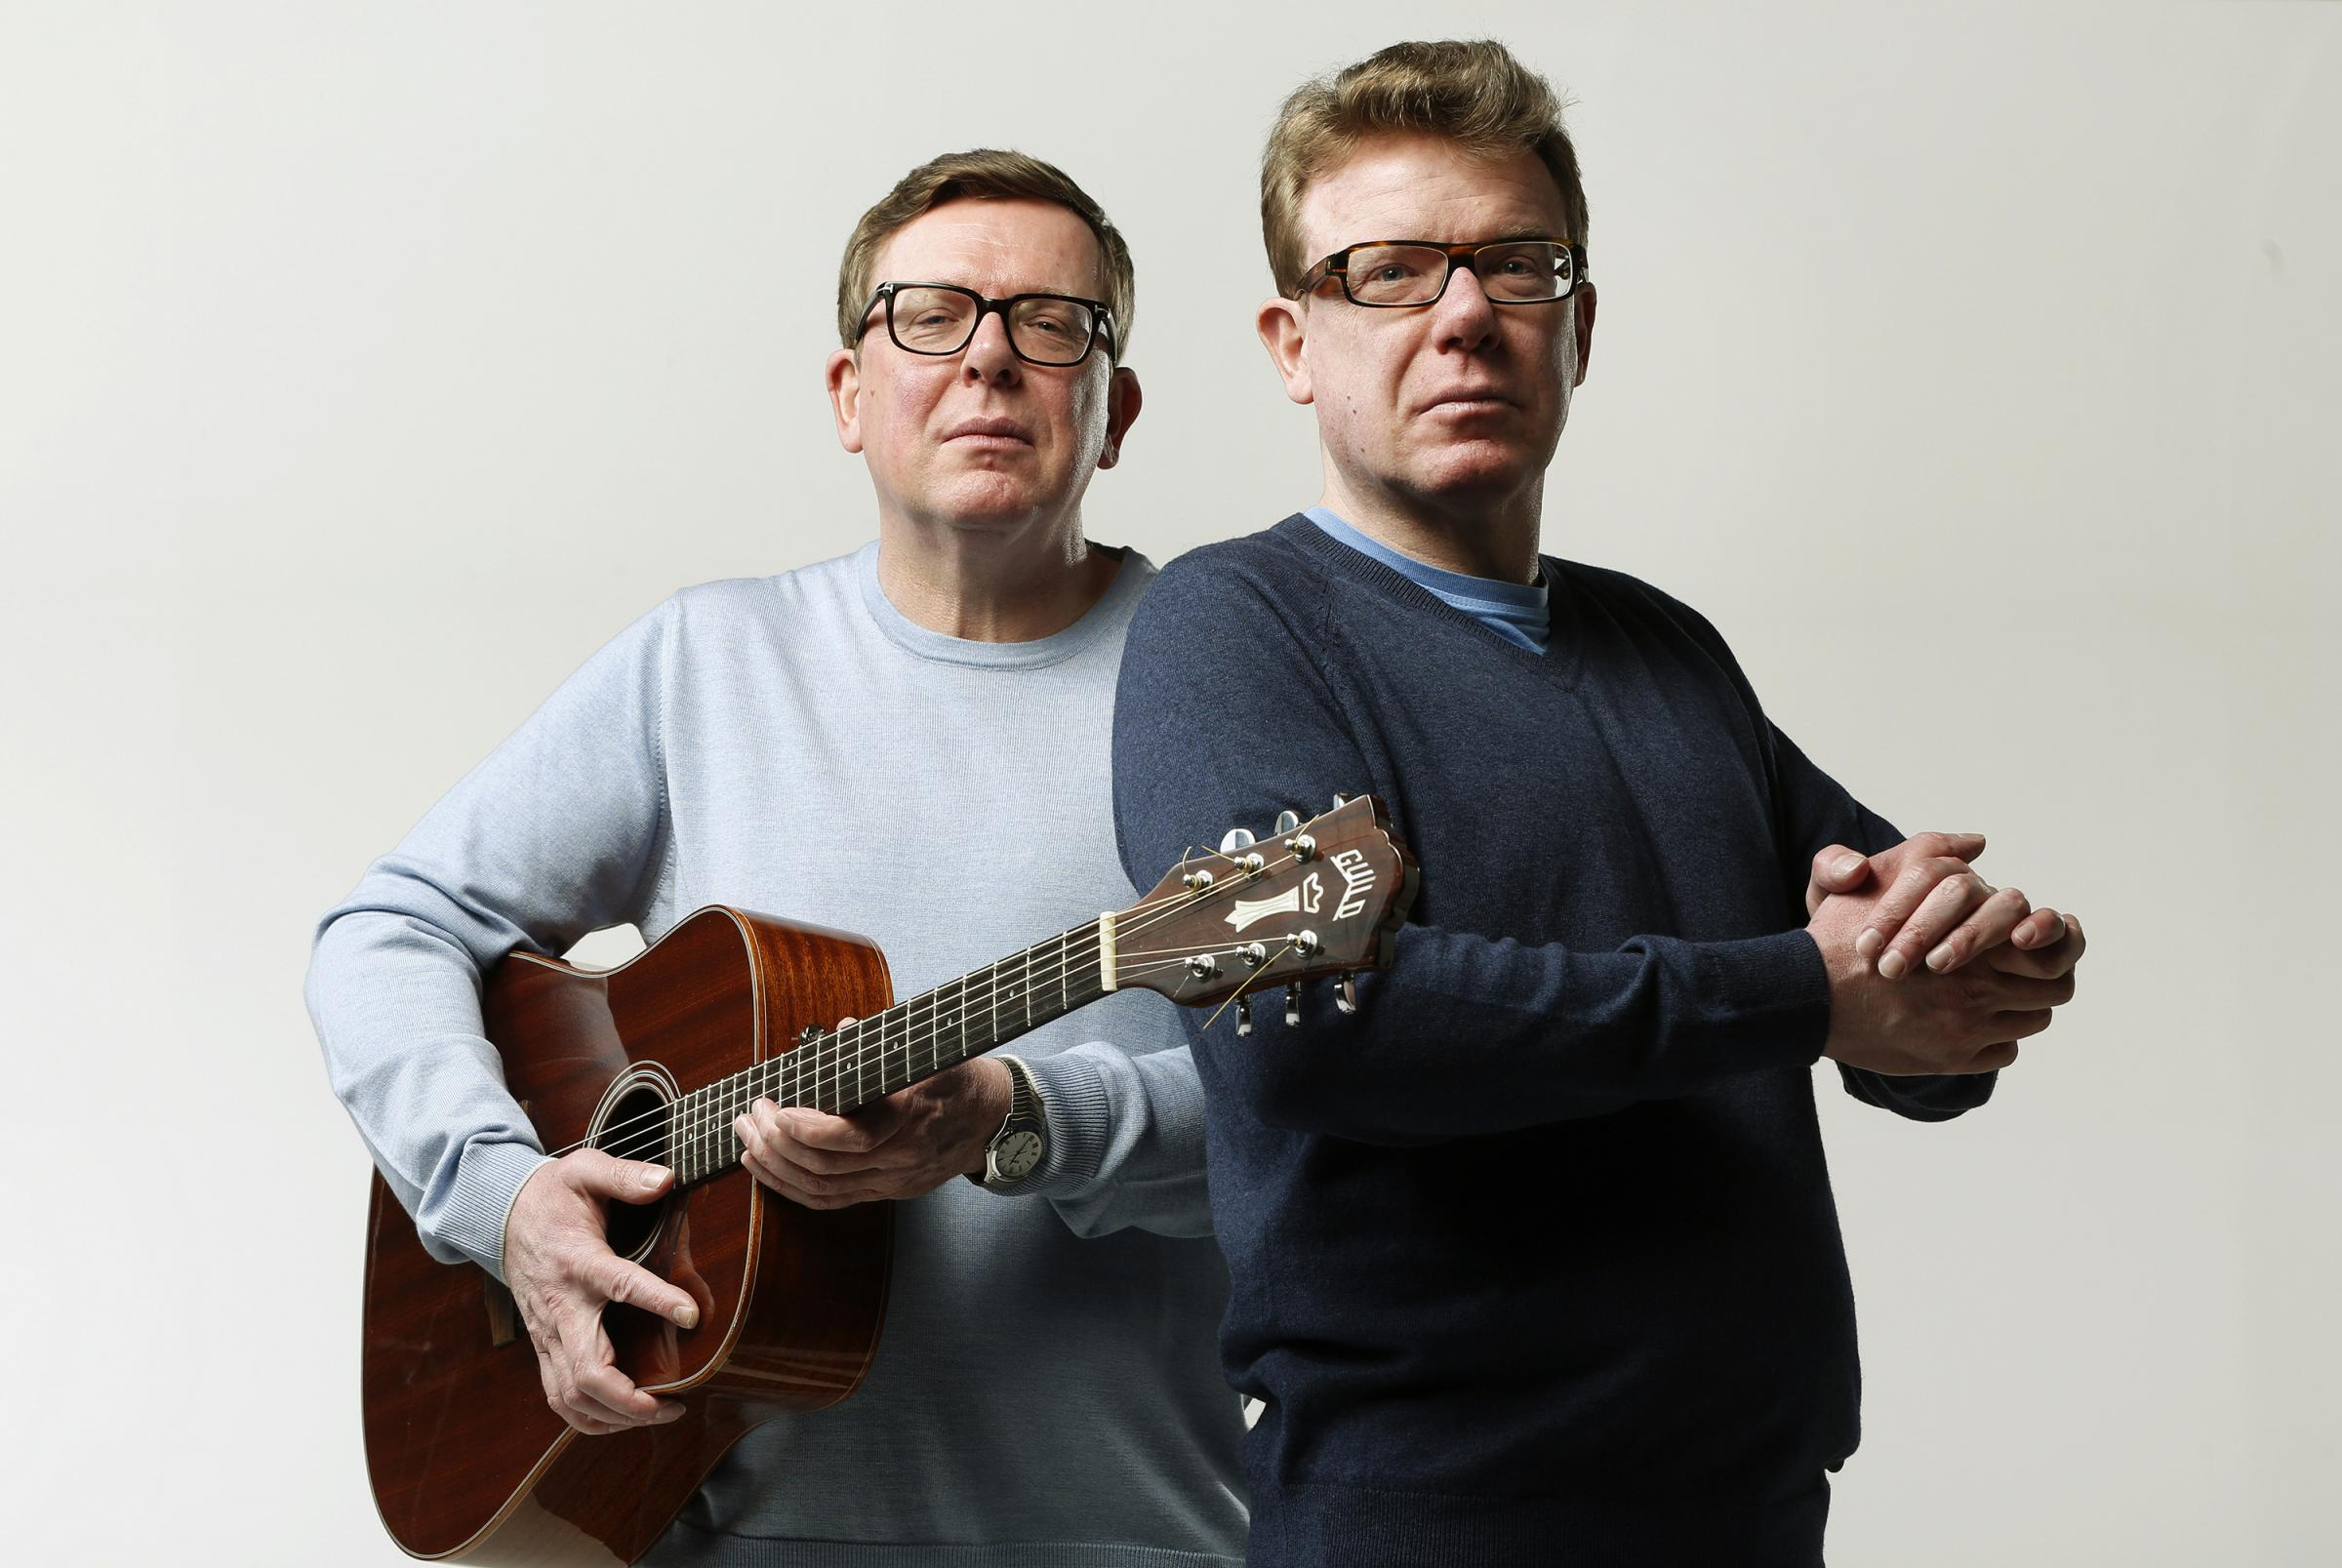 Craig and Charlie Reid, The Proclaimers. Seen here in studio shoot in Leith in 2018. Edinburgh, Scotland, UK  Edinburgh, Scotland UK 22/01/2018..© COPYRIGHT PHOTO BY MURDO MACLEOD..Tel + 44 131 669 9659..Mobile +44 7831 504 531..Email:  m@murd